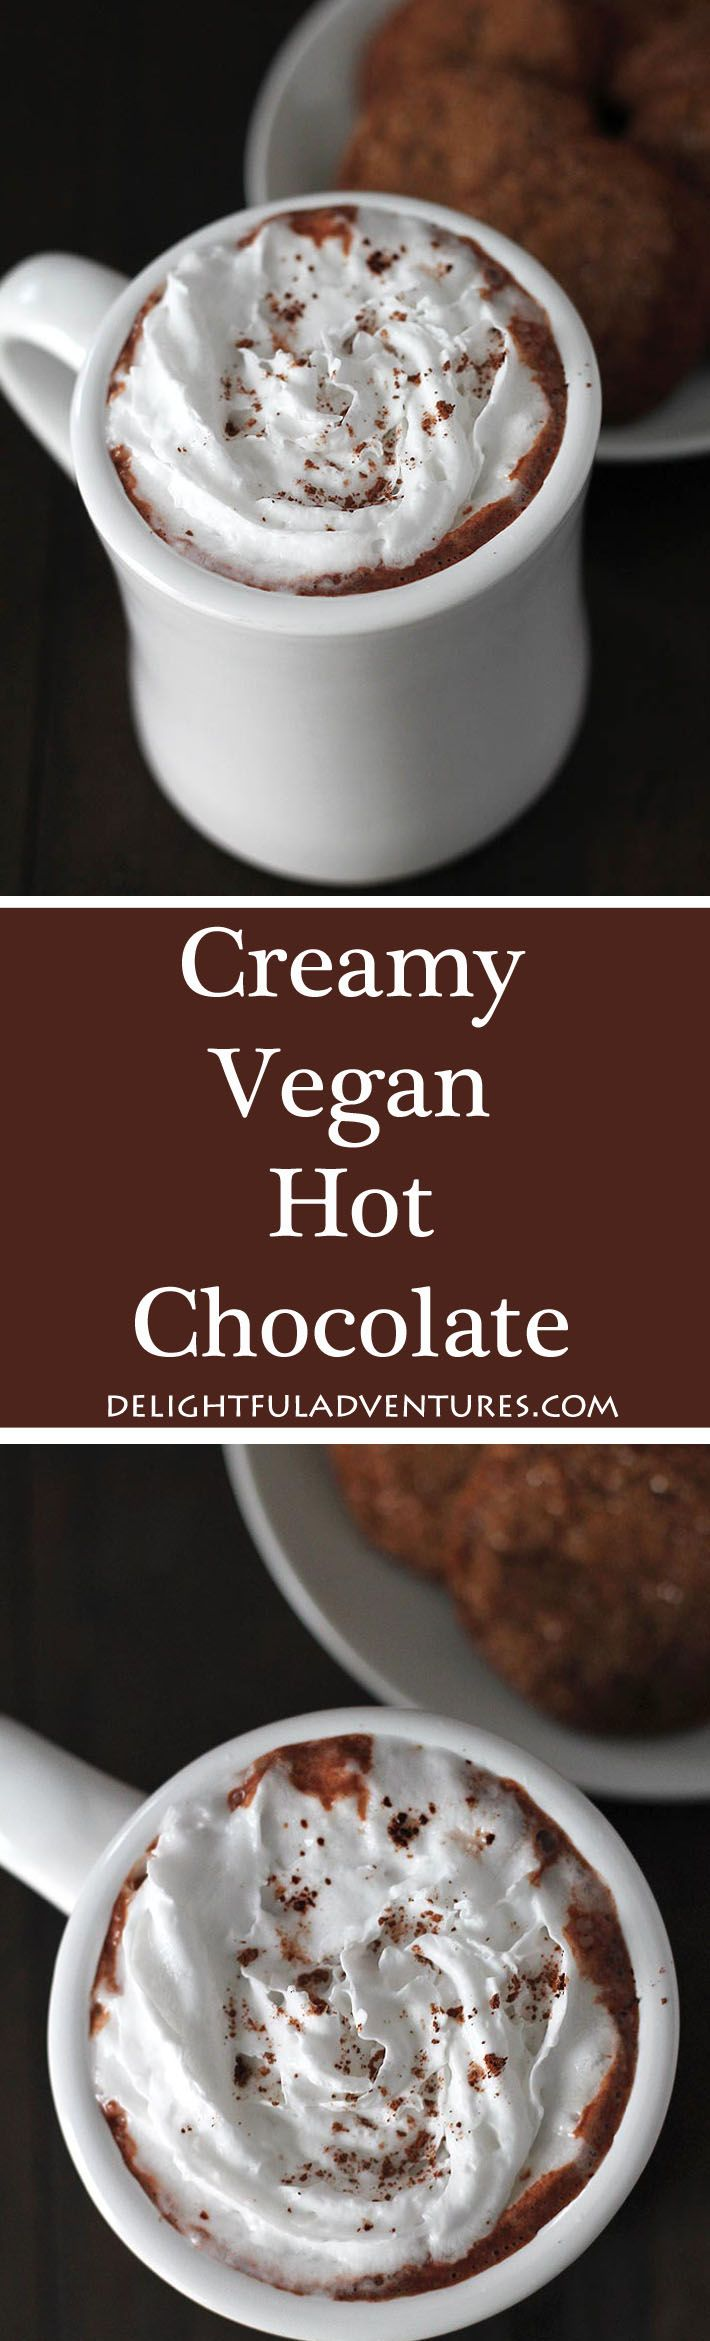 Why have regular hot chocolate when you can make yourself this easy, dairy-free creamy vegan hot chocolate to warm up with instead? #veganhotchocolate #dairyfree #dairyfreehotchocolate #hotchocolate